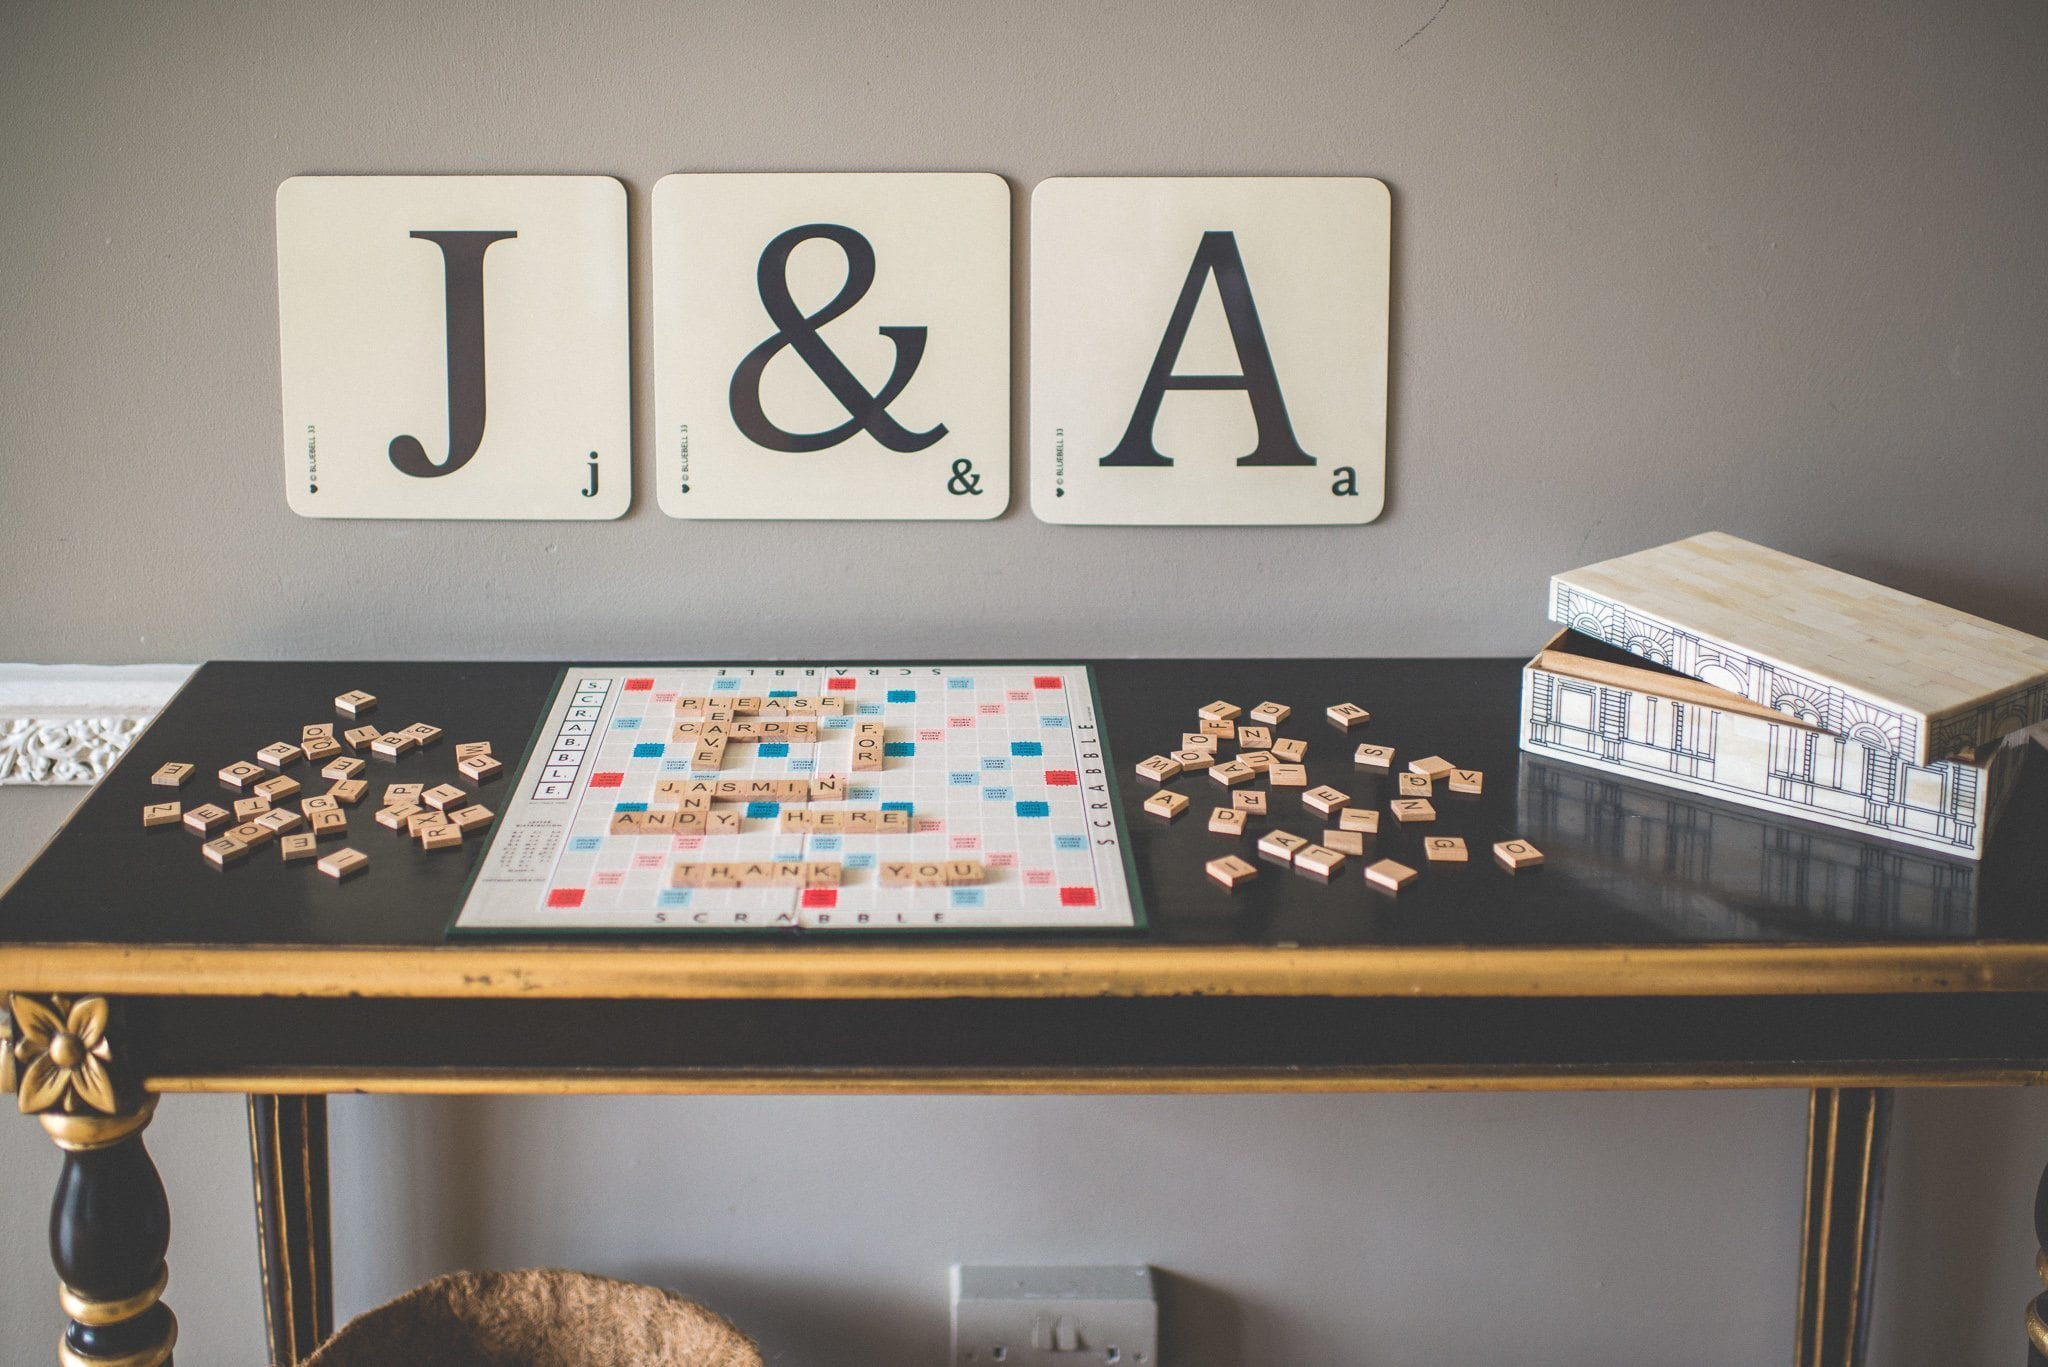 Jasmin and Andy's gift and card table, with instructions spelled out in Scrabble tiles and large J & A scrabble tiles on the wall behind it